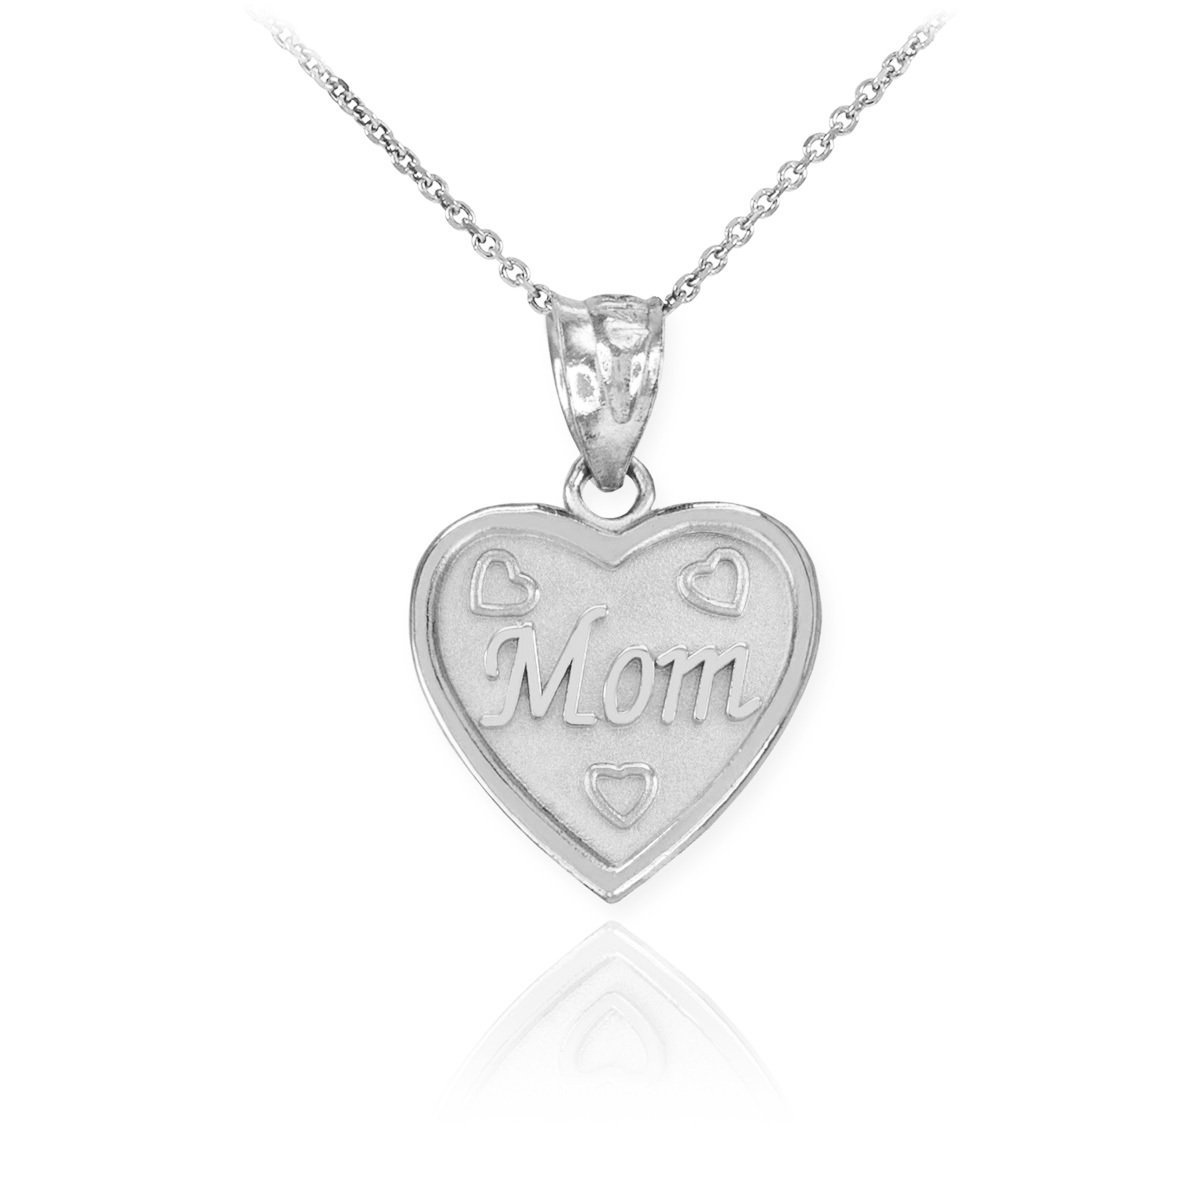 High Polish 925 Sterling Silver Mom Heart Necklace